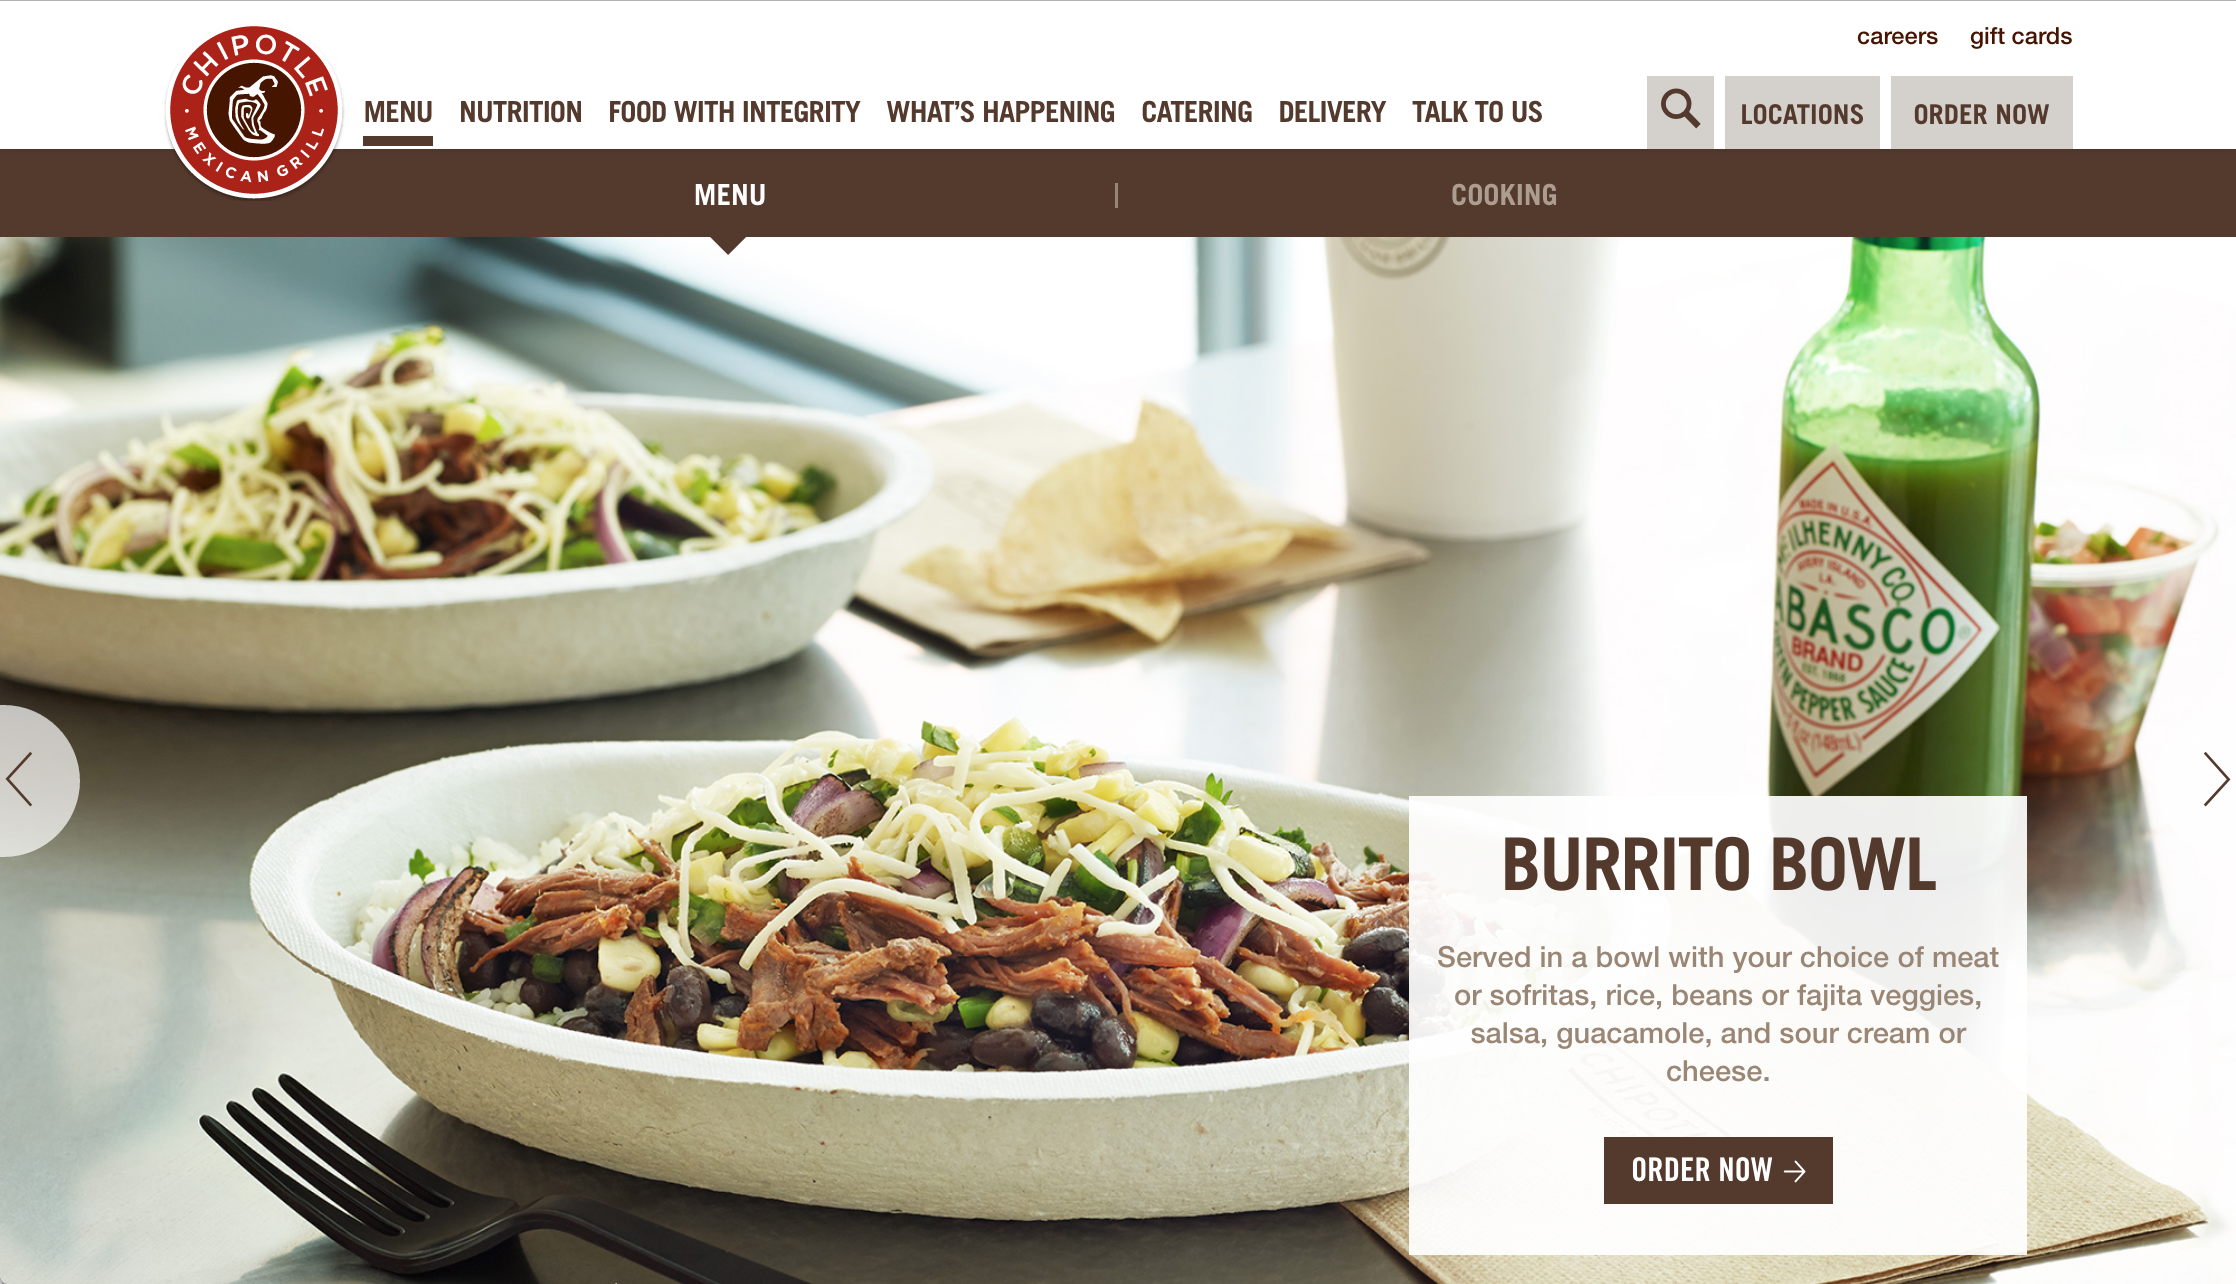 chipotle-website-user-experience-design.png